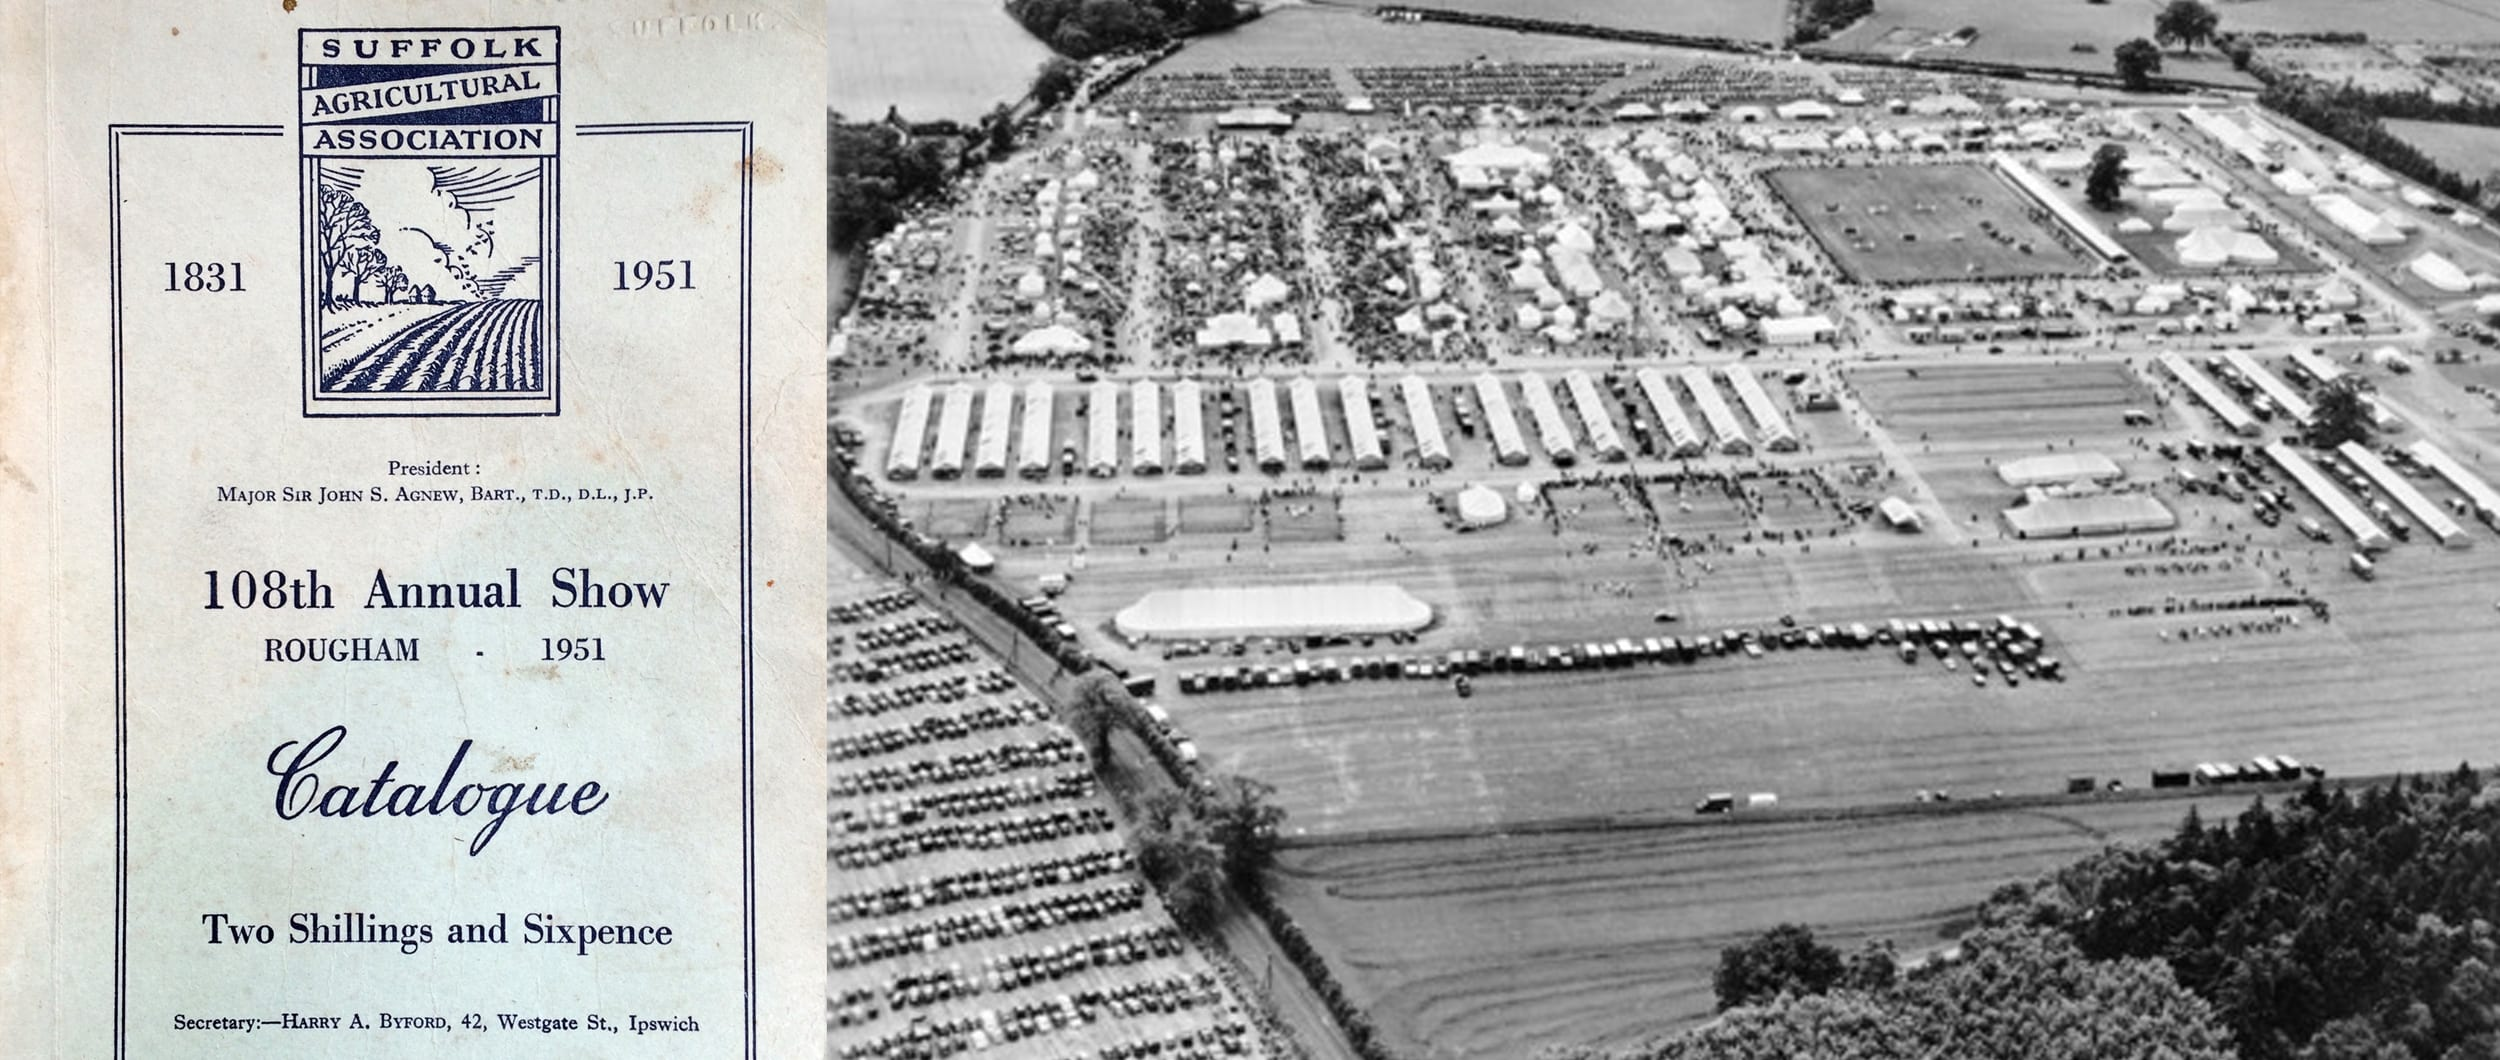 Suffolk Show on Rougham Estate in 1951